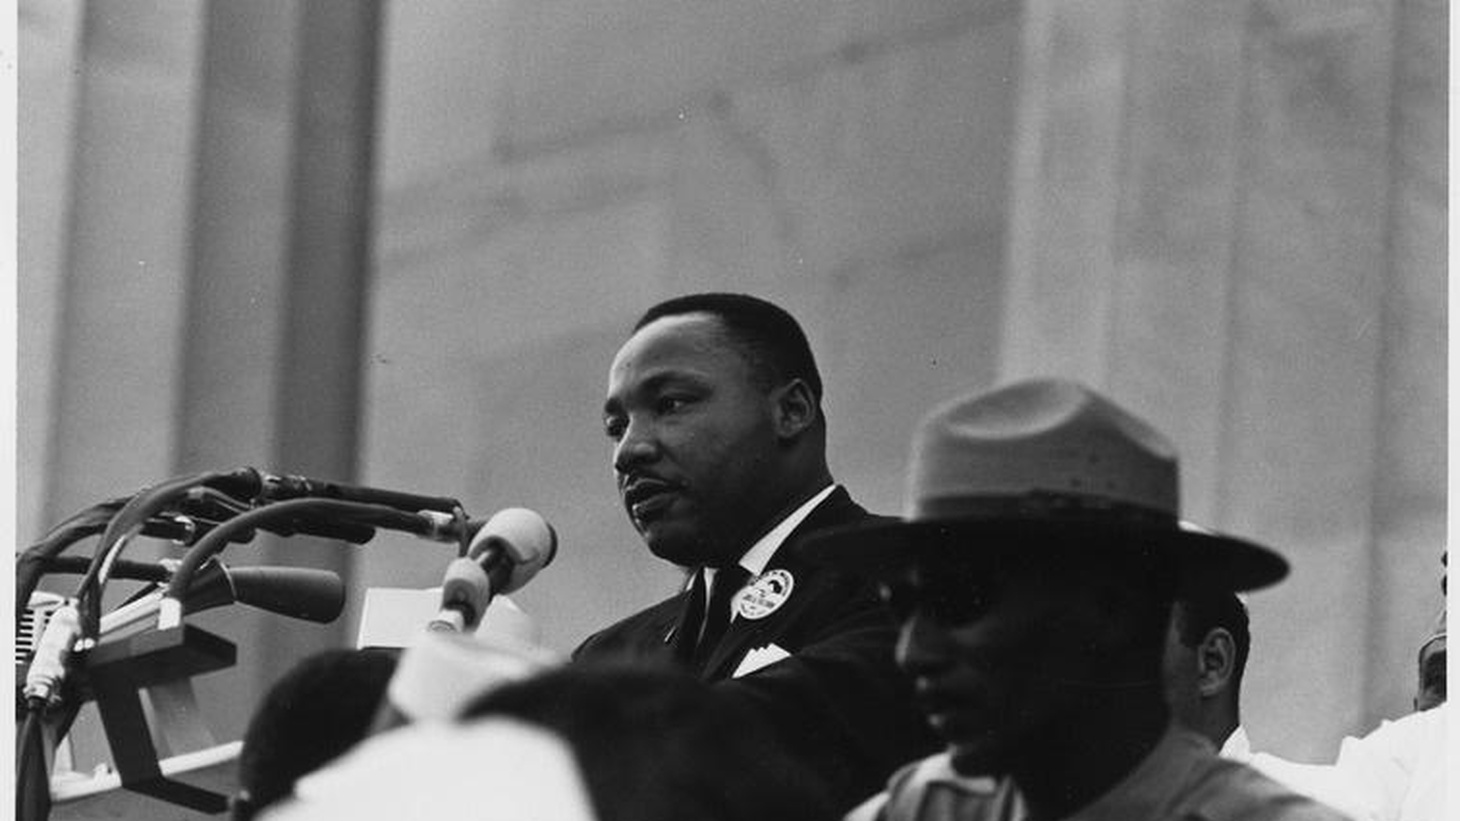 """We talk with people who attended the March on Washington. Why did integrated non-violence surprise the US? Has Dr. King's """"Dream"""" been achieved? What's been forgotten?"""